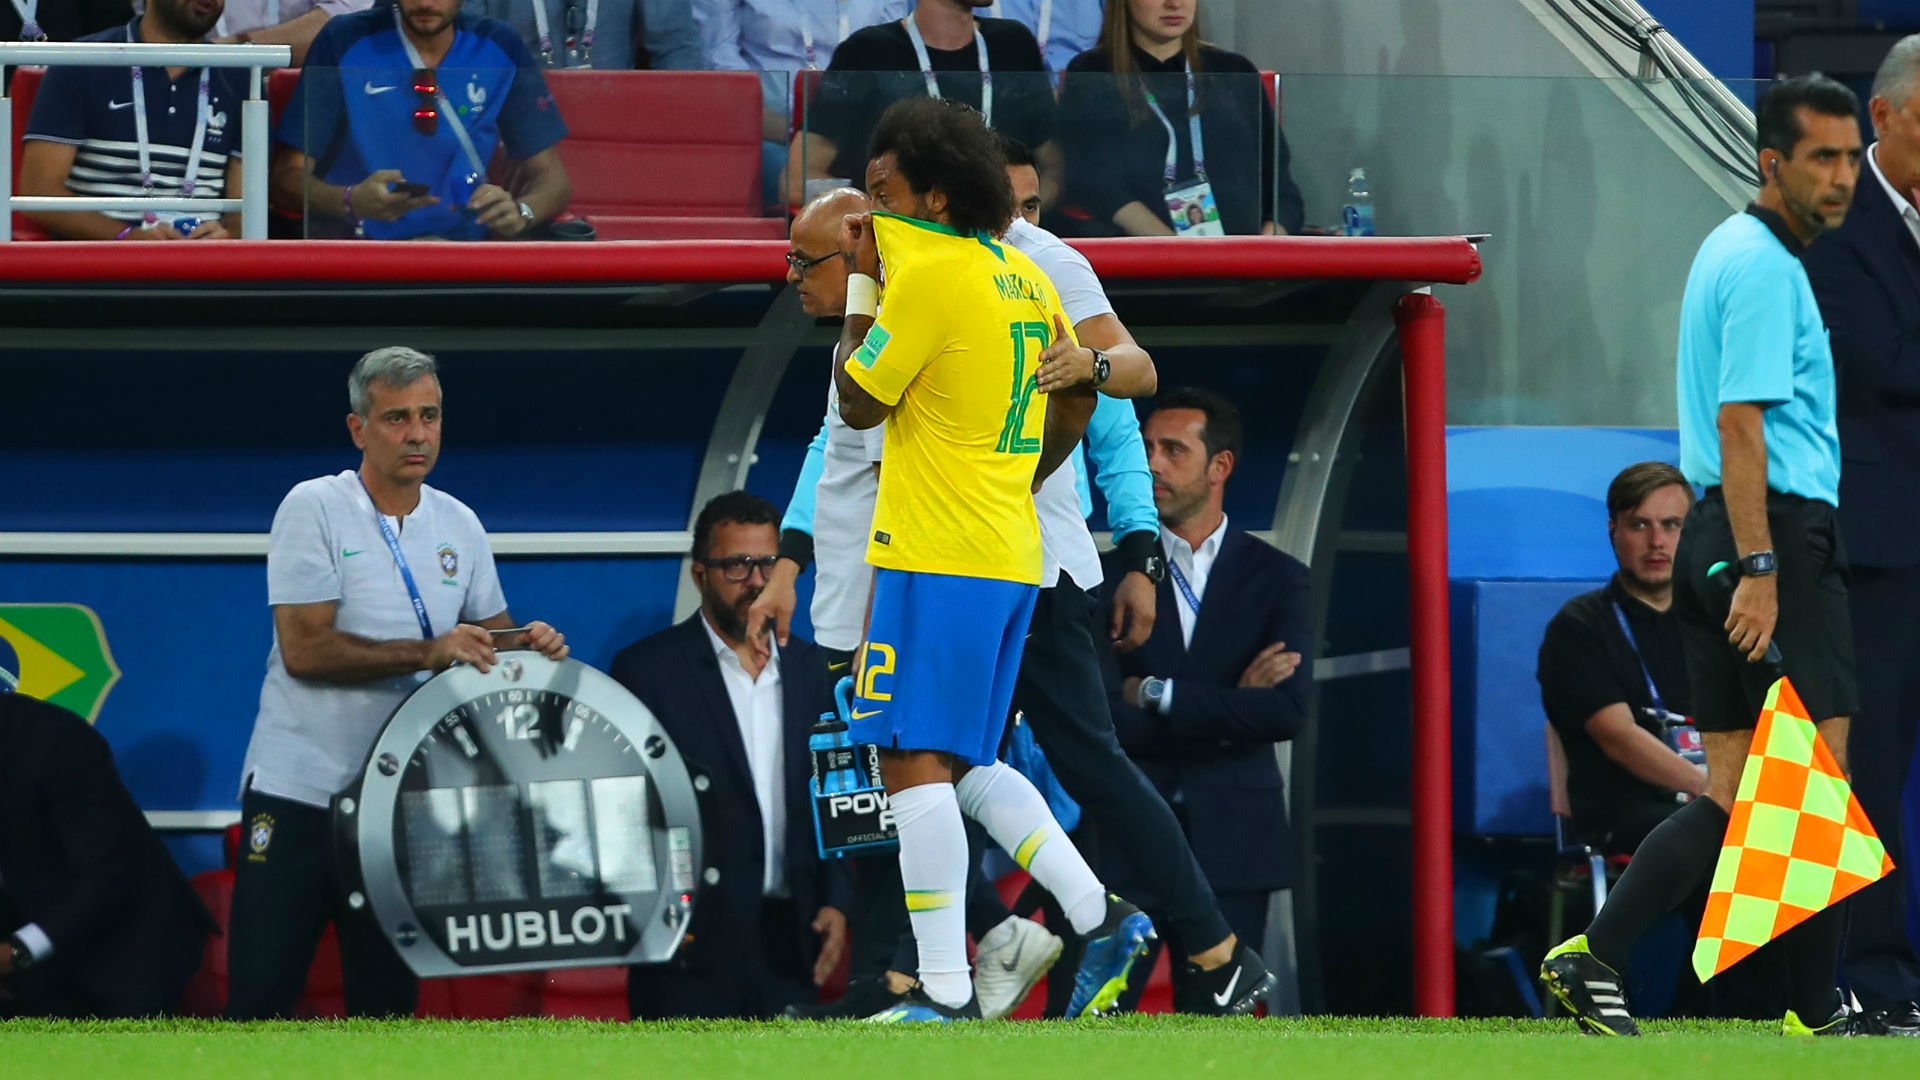 World cup news and photos 2020 brazil vs serbia full match